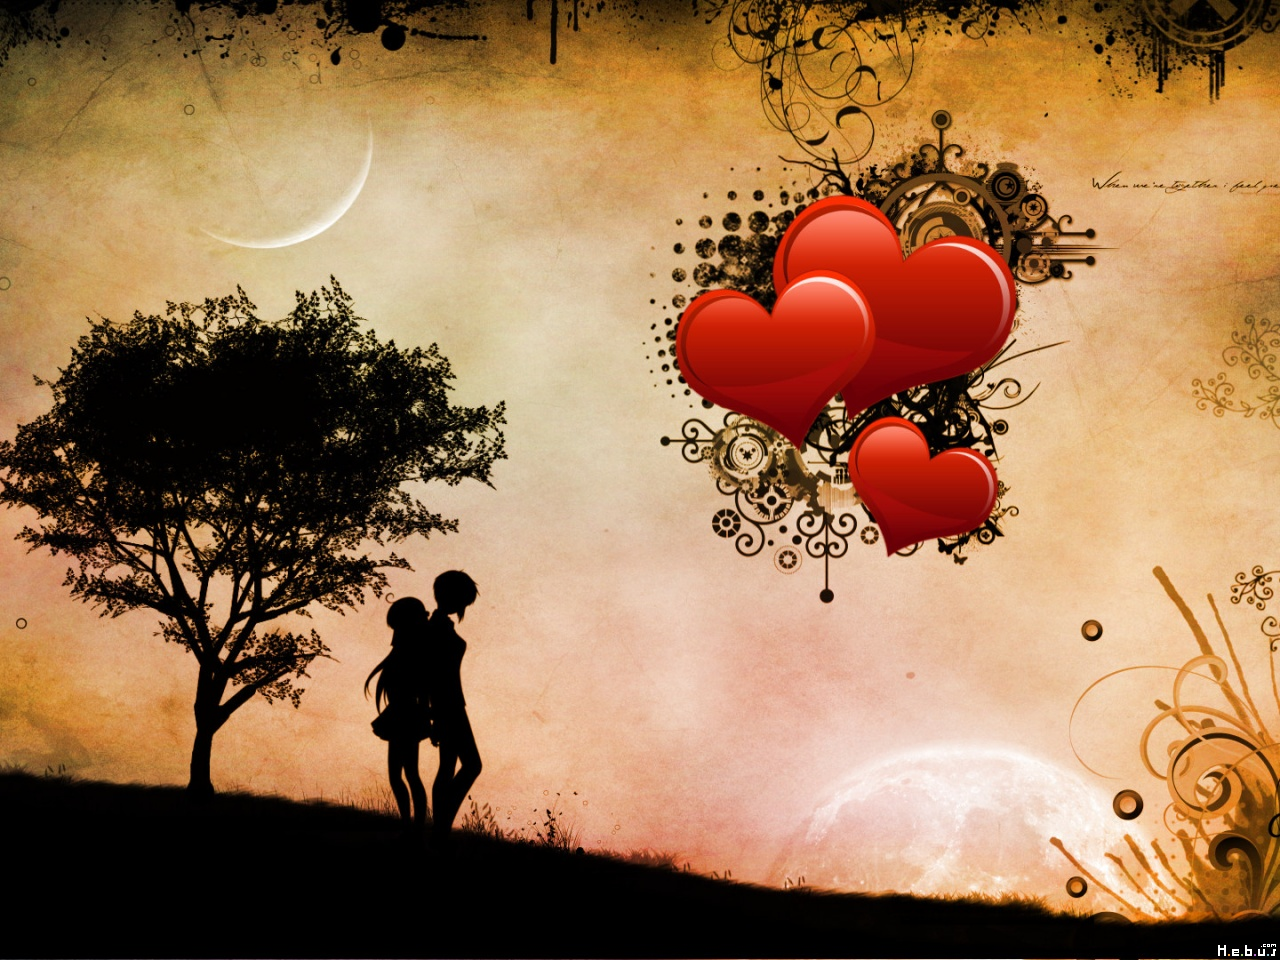 Beautiful Wallpaper Of Love Hd : A Wallpapers Home: hd wallpapers of love